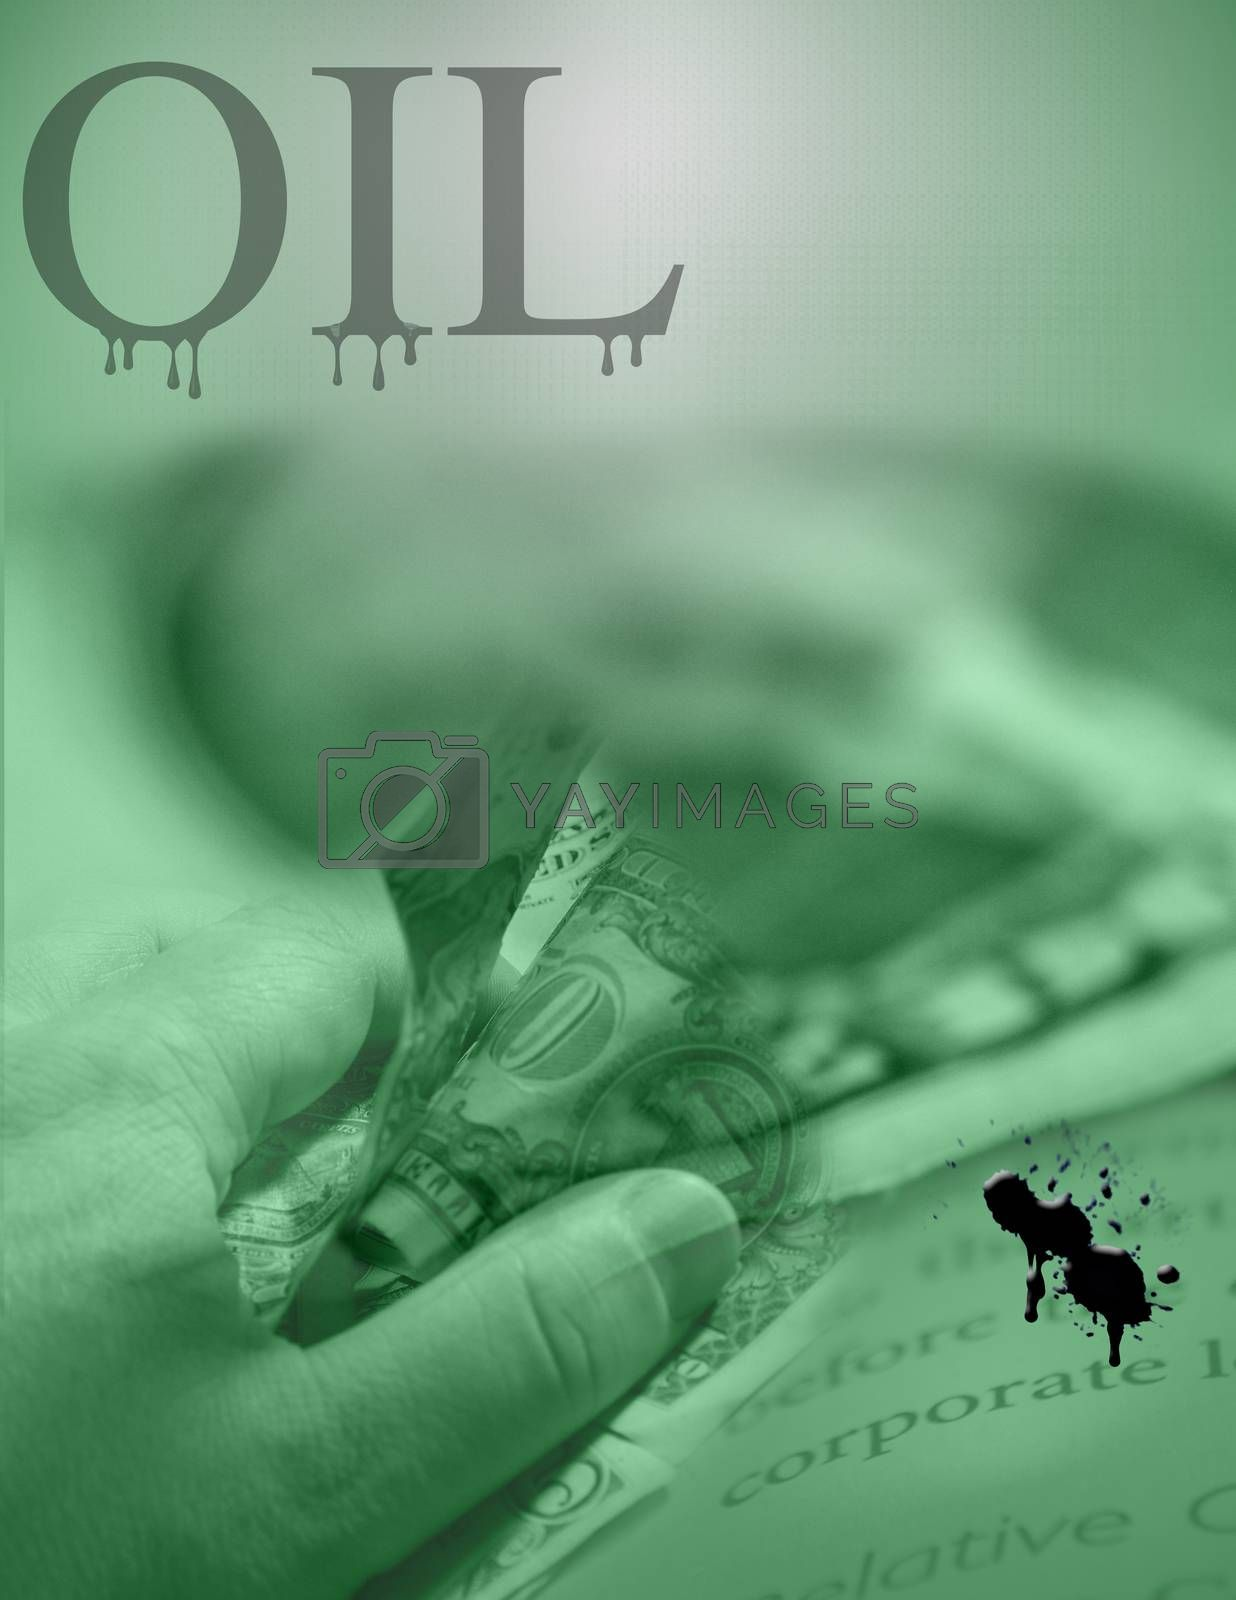 Dollars in human hand and crude oil stains